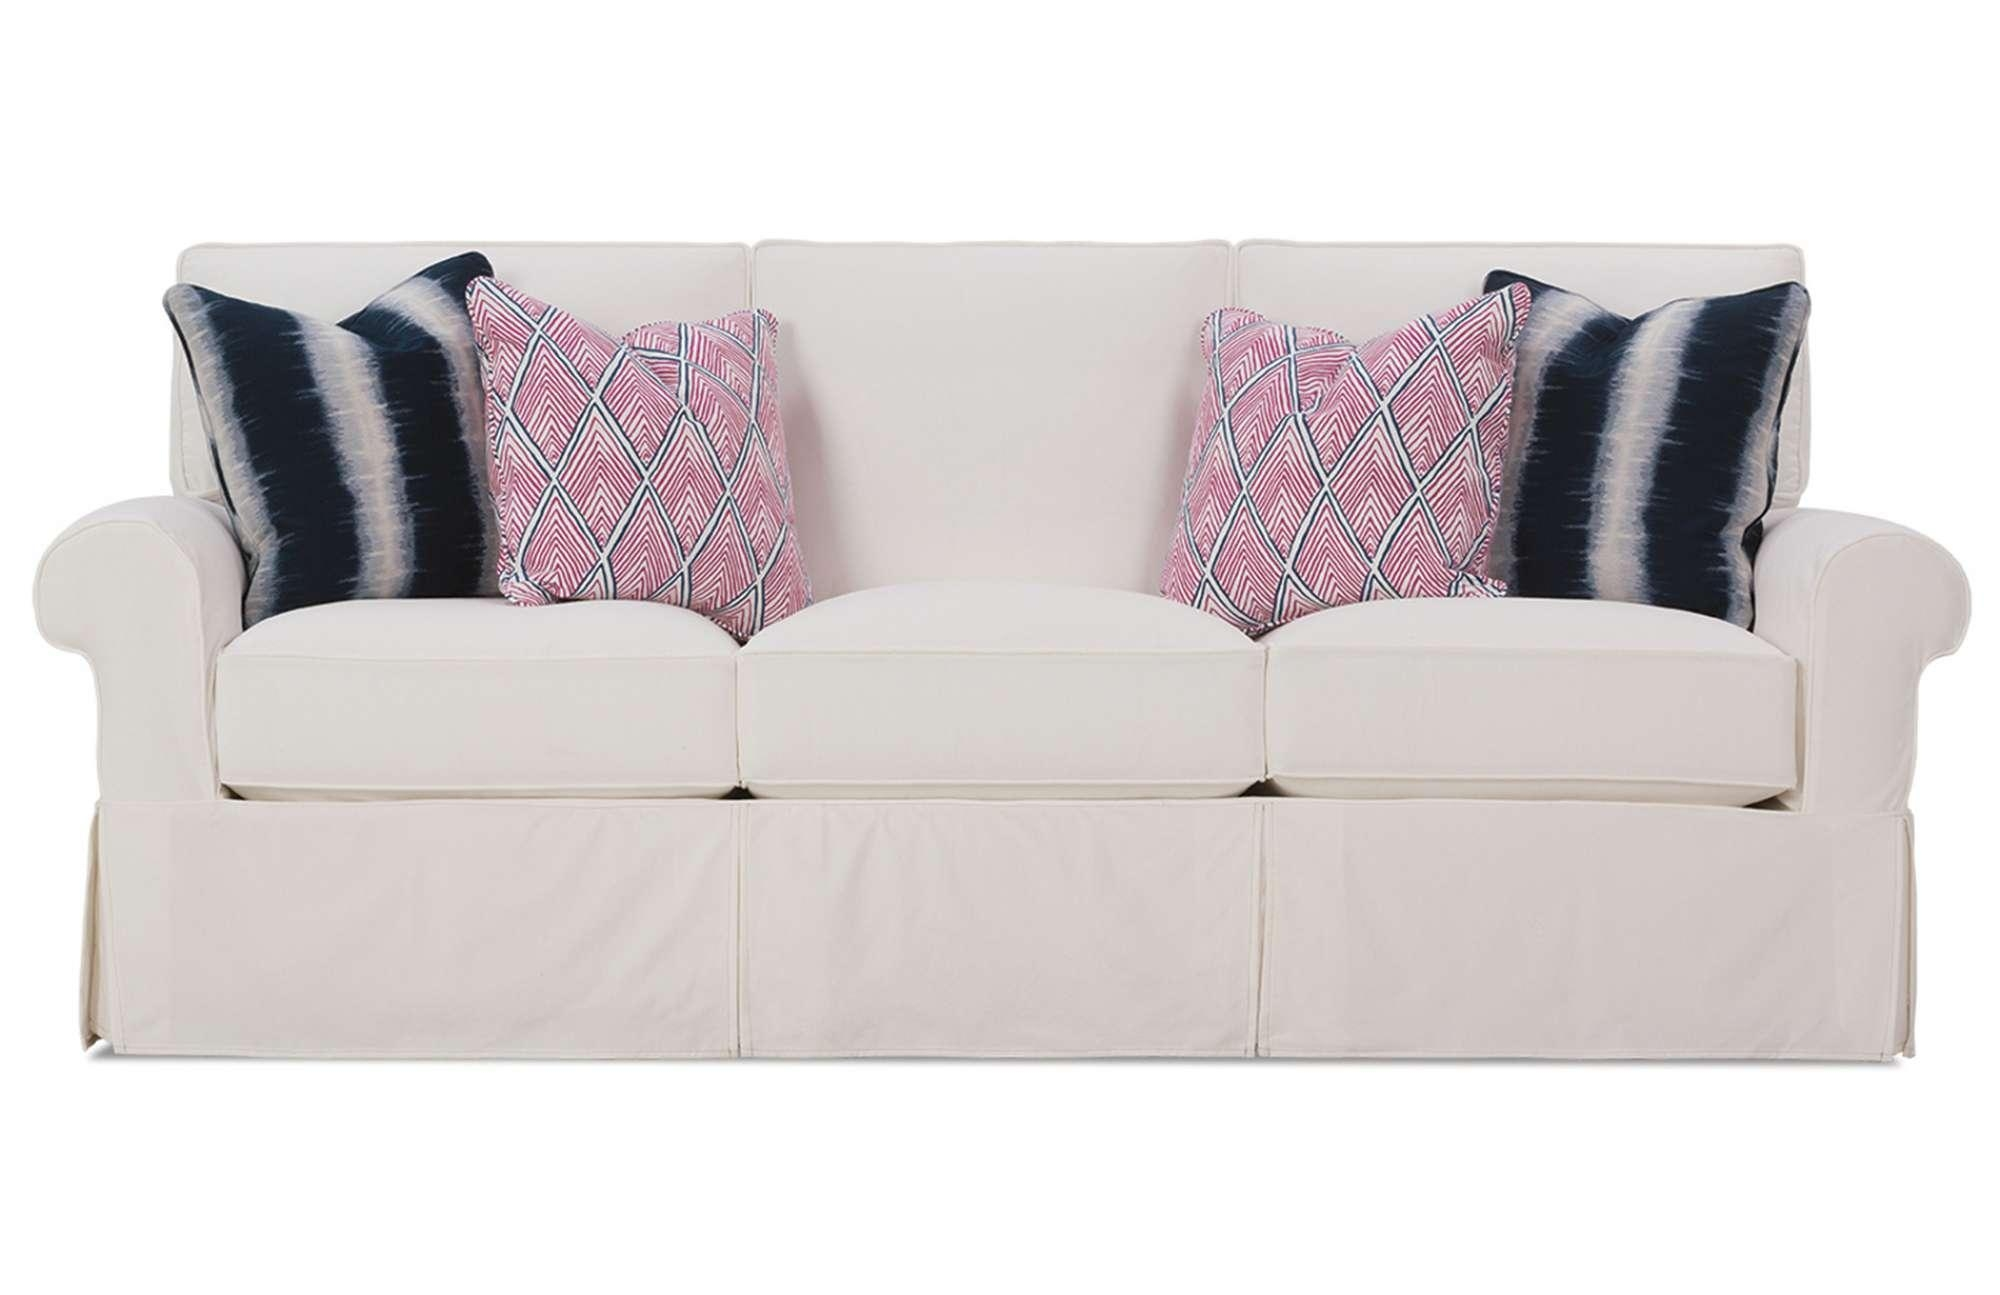 Easton Slipcover Sofarowe Furniture In Rowe Slipcovers (Image 6 of 20)